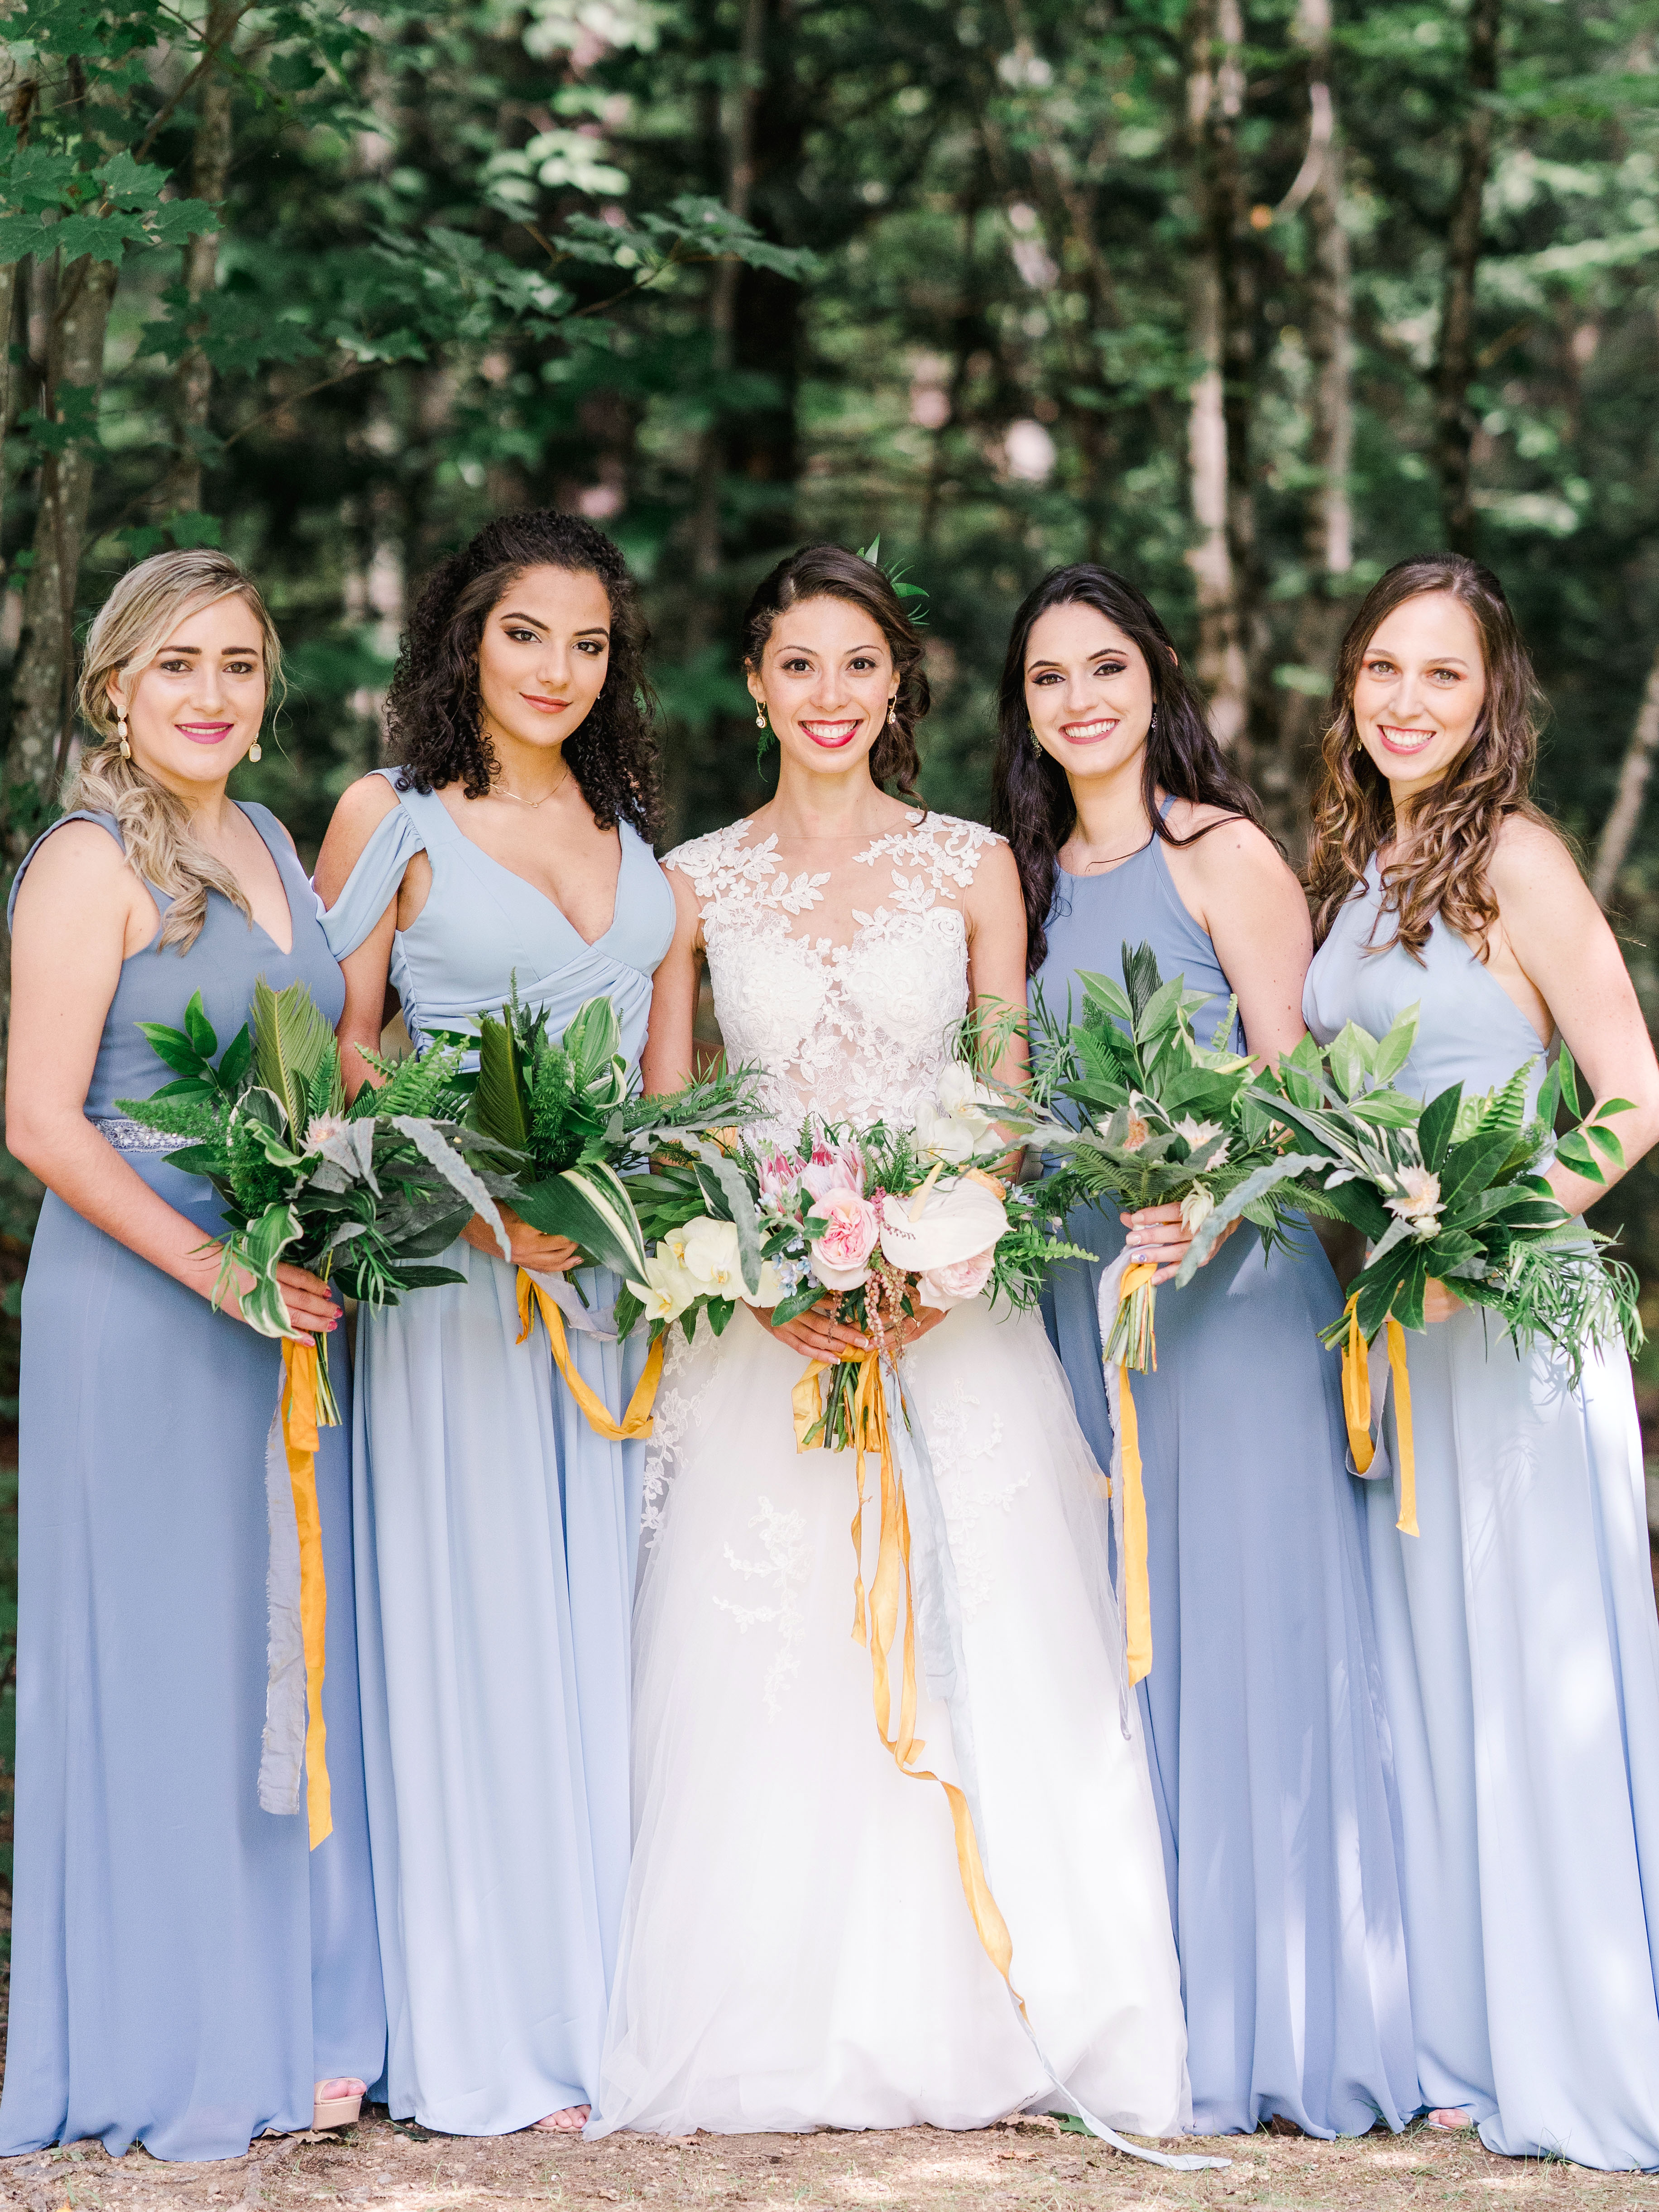 dayane collin wedding bride bridesmaids